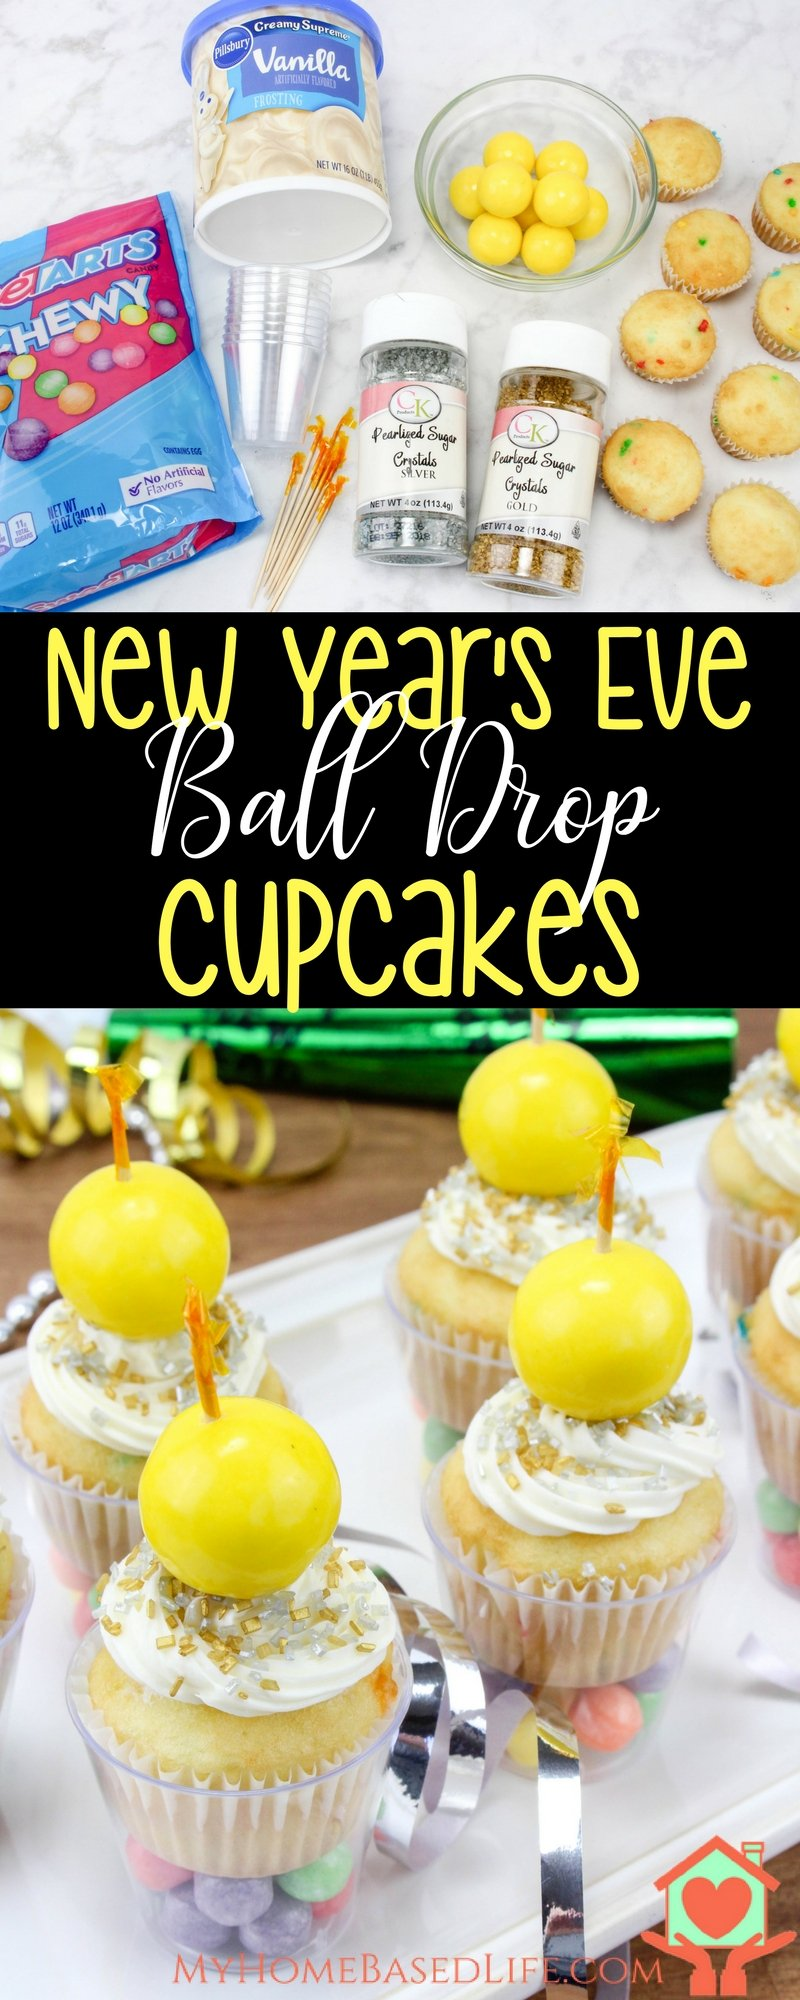 New Year's Ball Drop Cupcakes | New Year's Dessert | New Year's Eve Food | New Year's Party Ideas | New Year's Eve | #newyearseve #newyearsfood